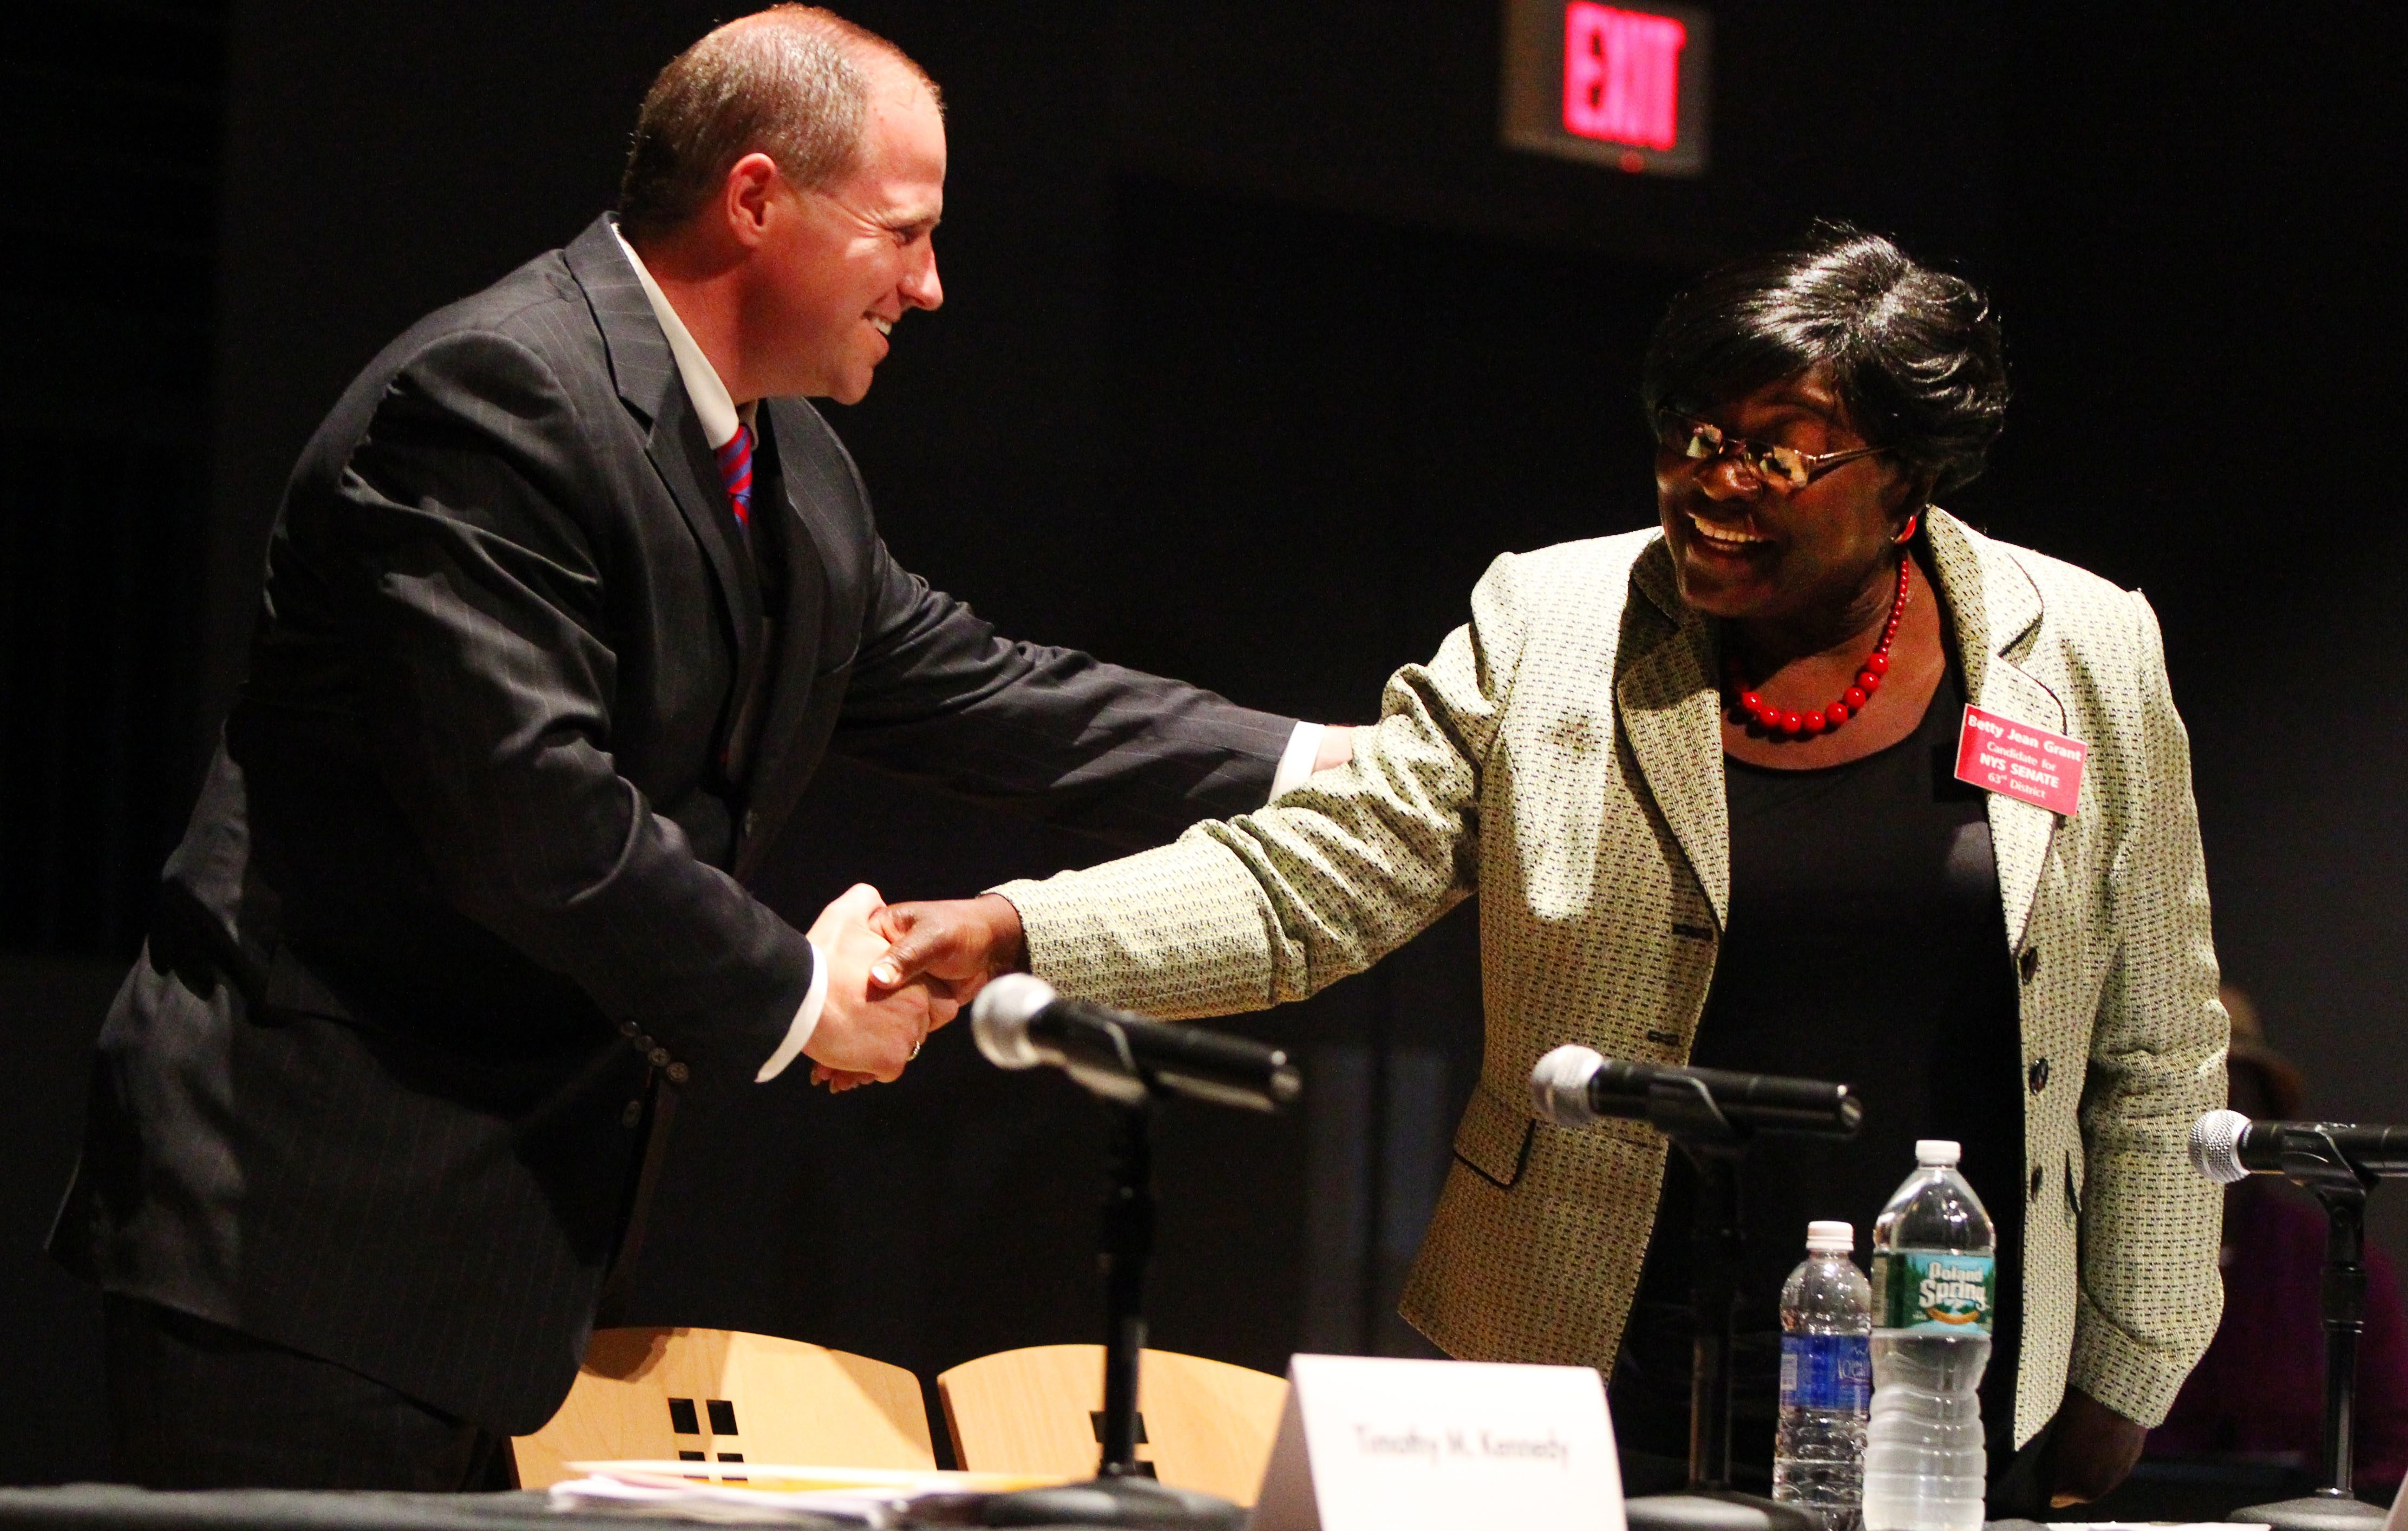 State Sen. Tim Kennedy shakes hands with candidate Betty Jean Grant after their debate in Burchfield Penny Art Center in Buffalo on Tuesday.